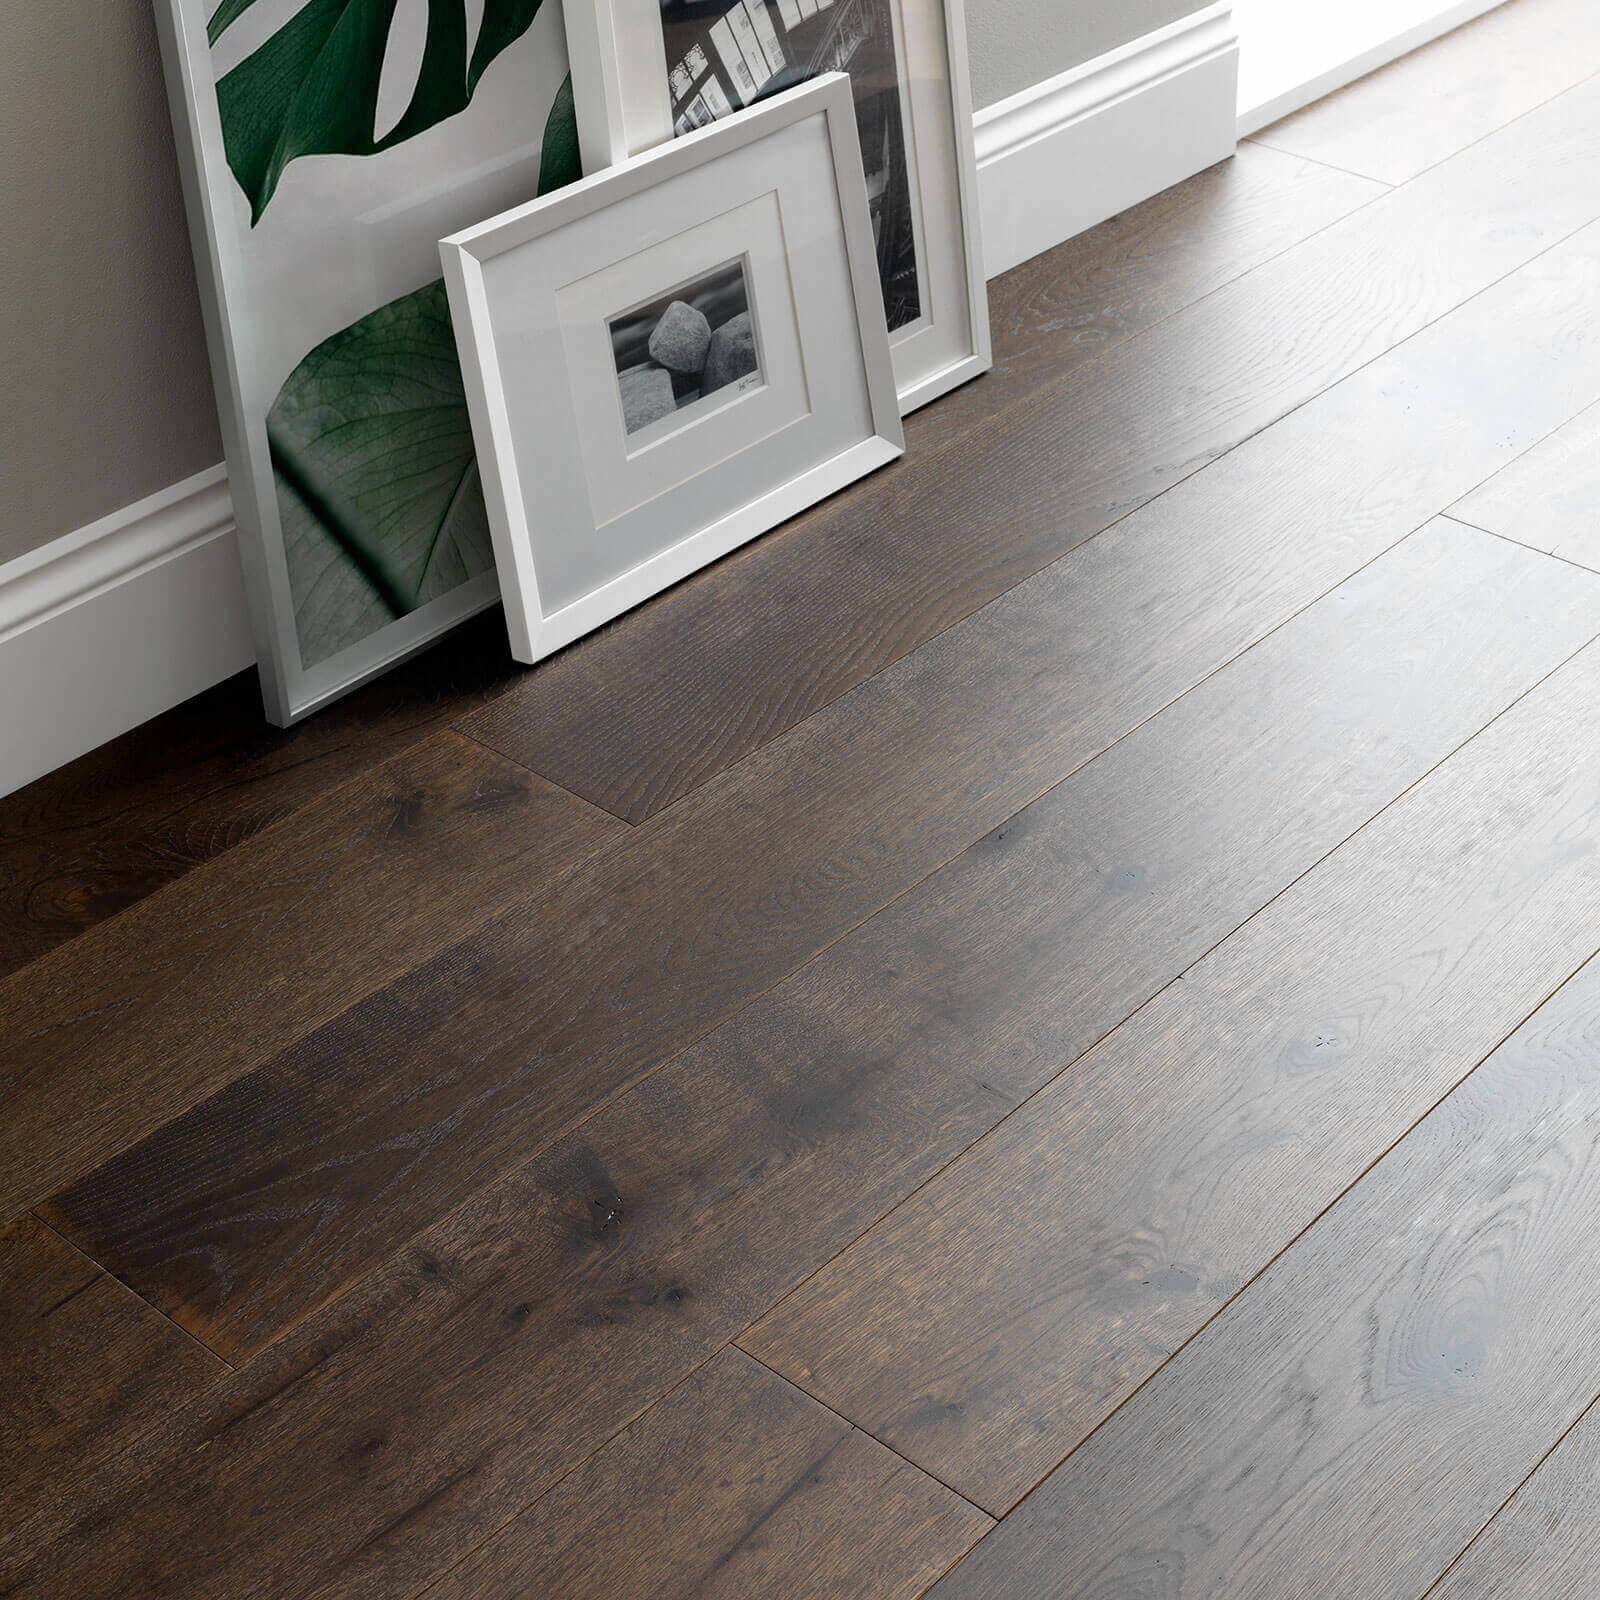 Woodpecker Chepstow Planed Cocoa Oak Hardwax Oiled Engineered Wood Flooring 189mm 65-POC-001